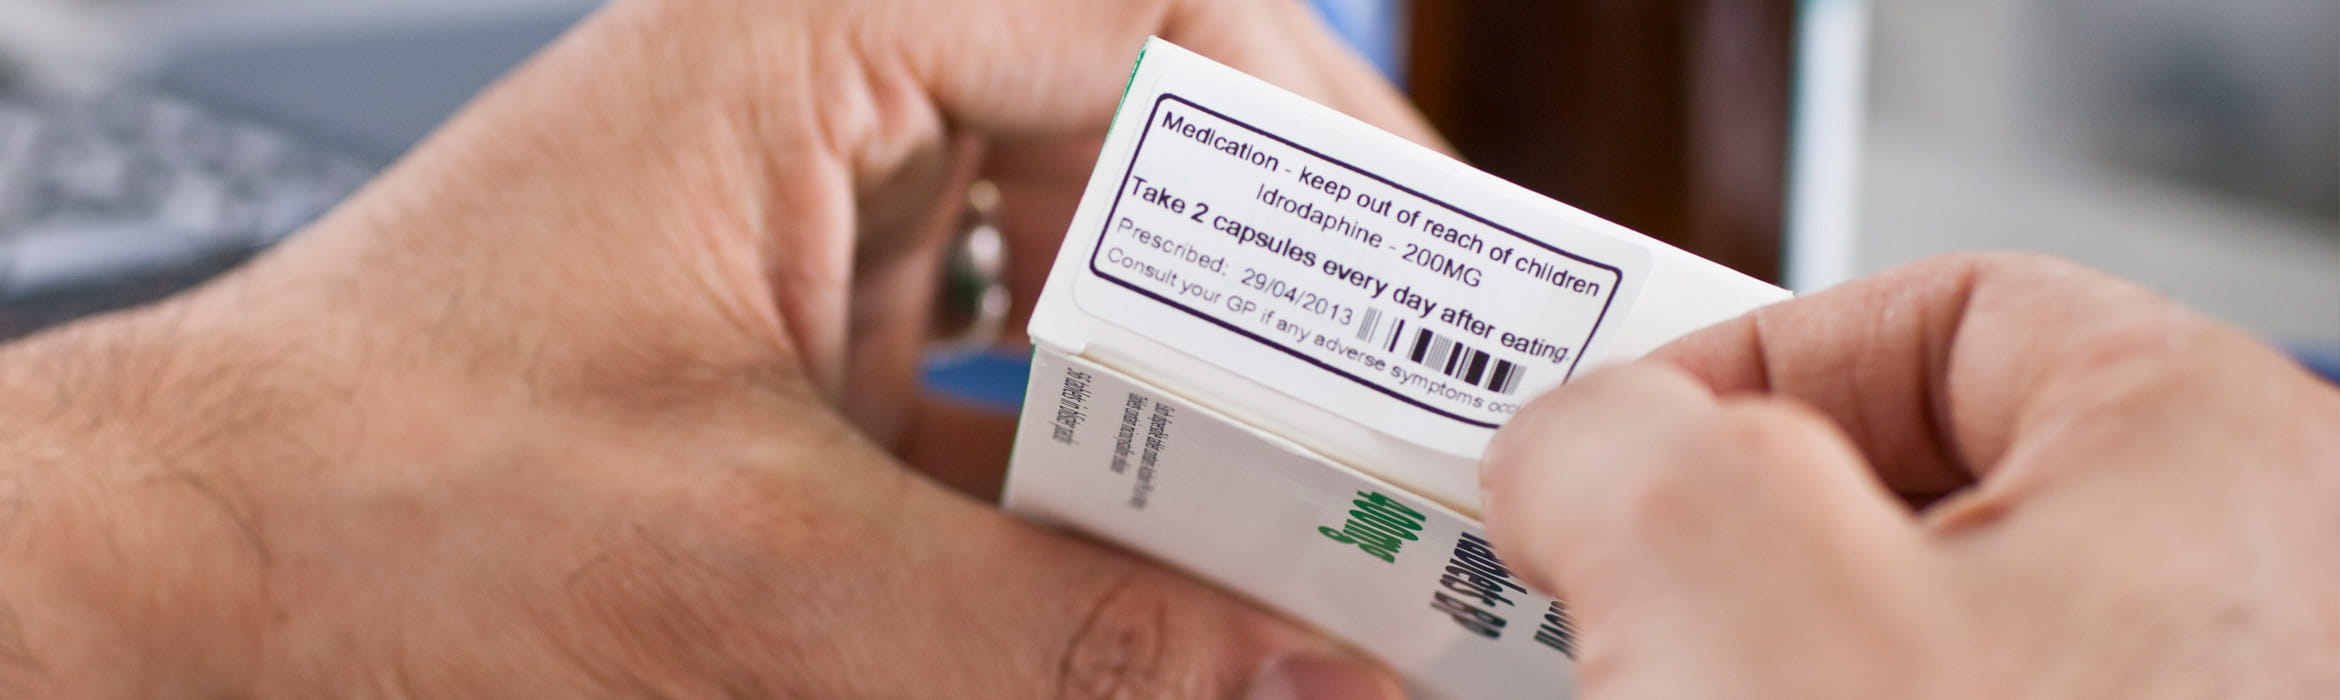 Drug packet label